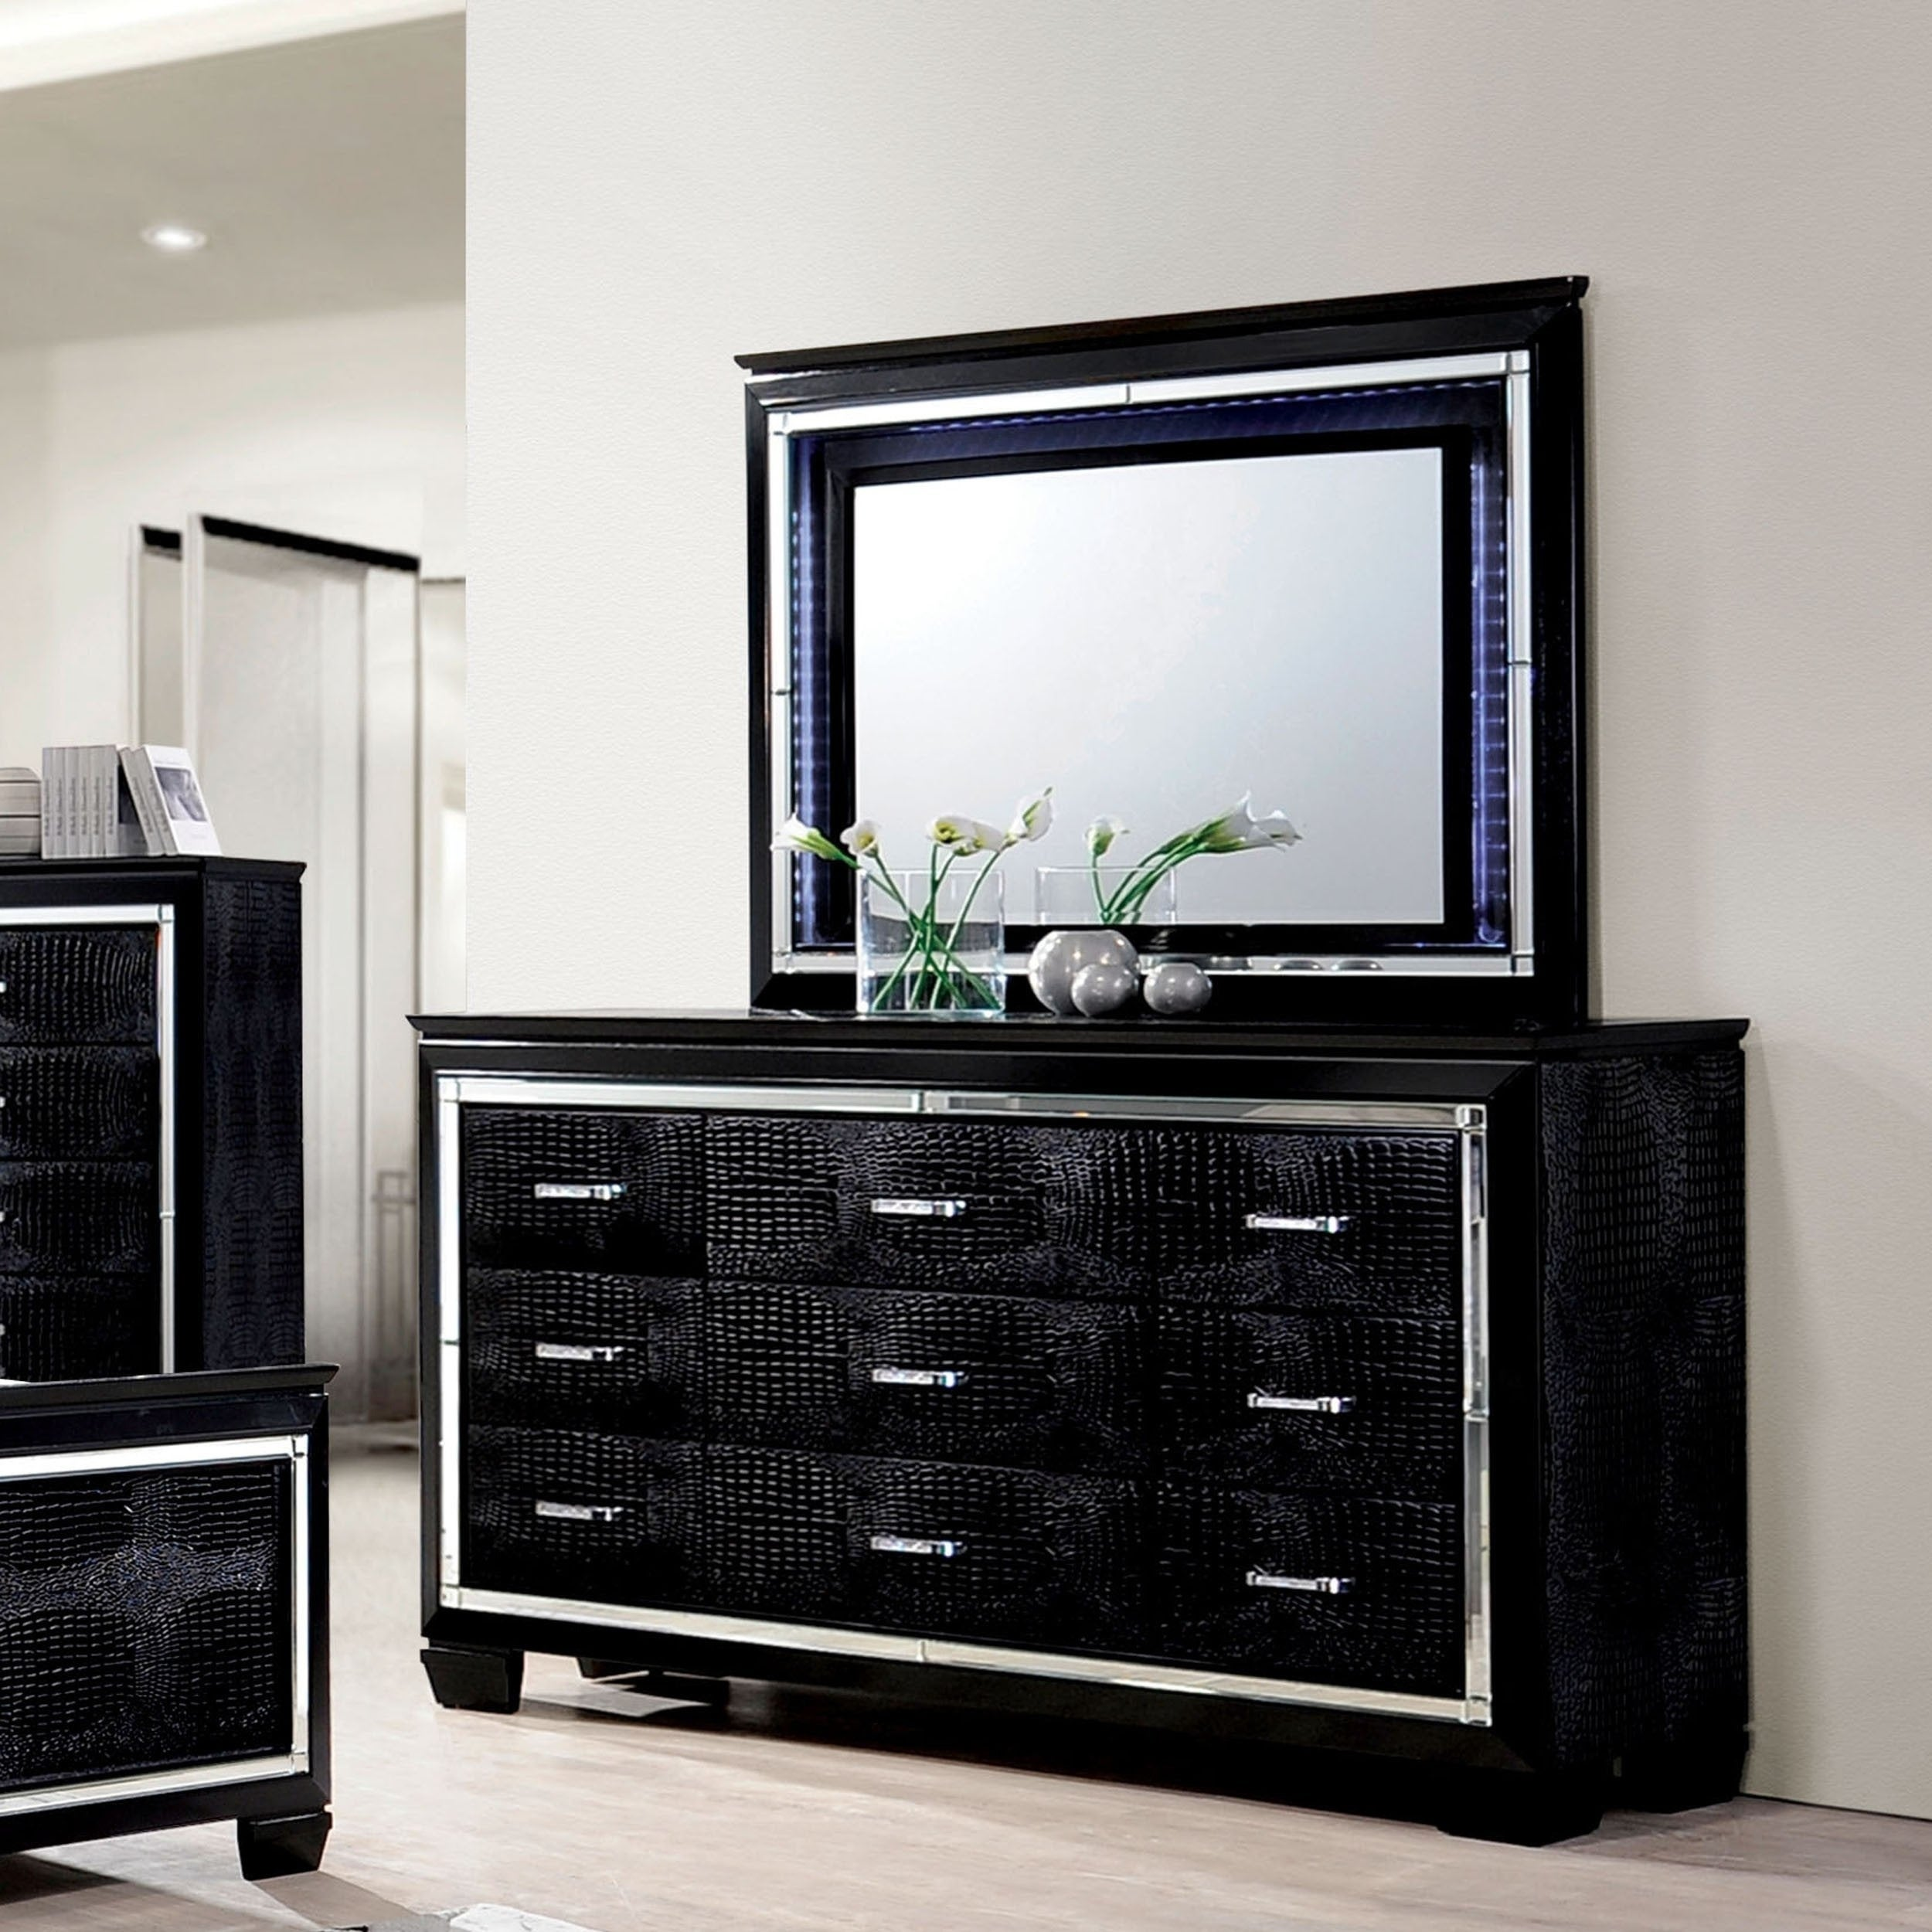 Buy Mirrored Dressers U0026 Chests Online At Overstock.com | Our Best Bedroom  Furniture Deals